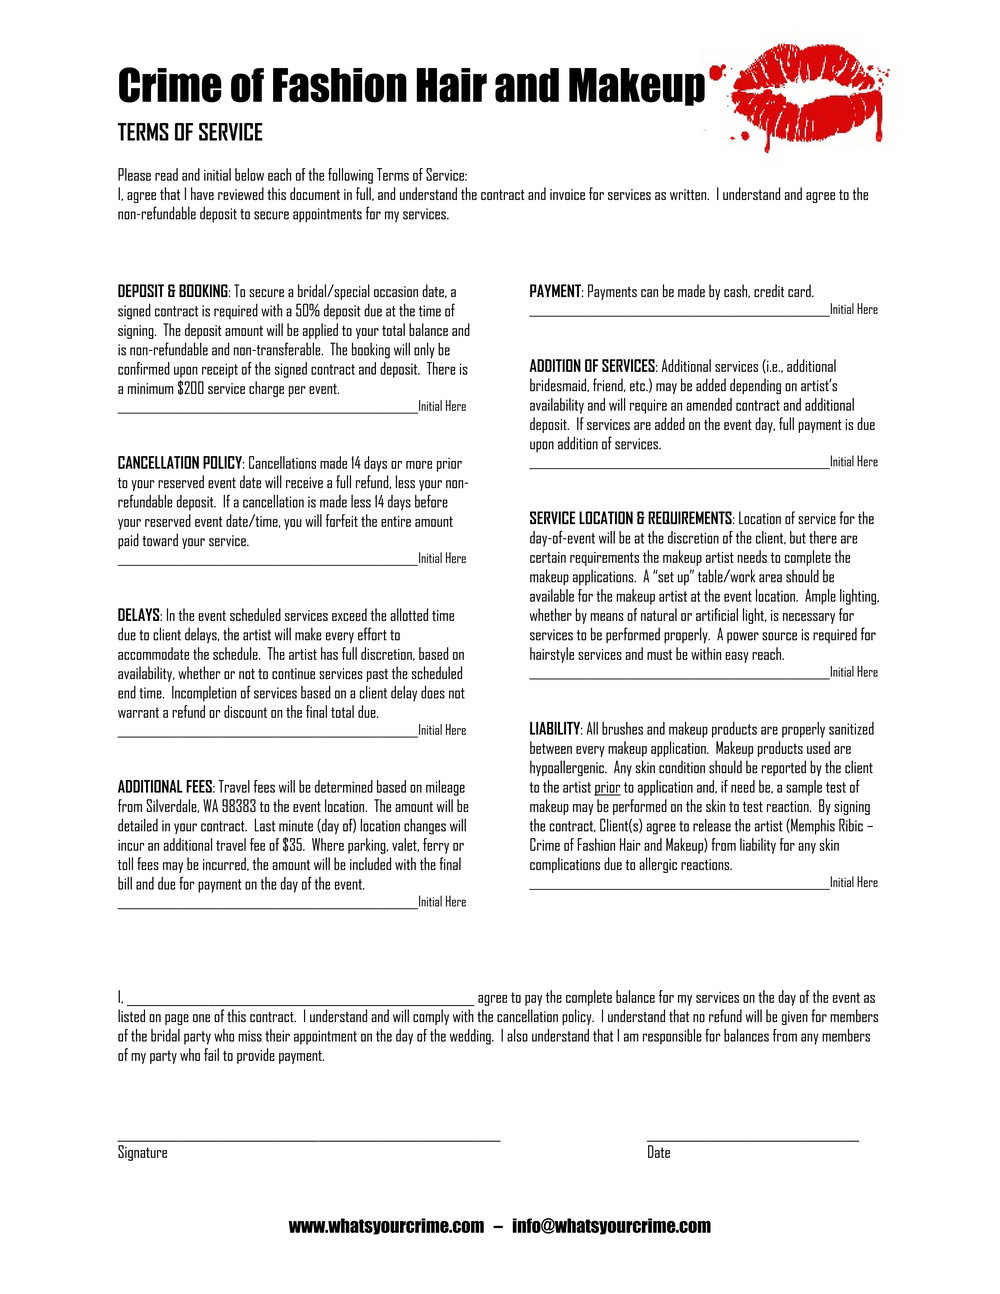 Bridal Contract-noprice-2018_Page_2-resize.jpg